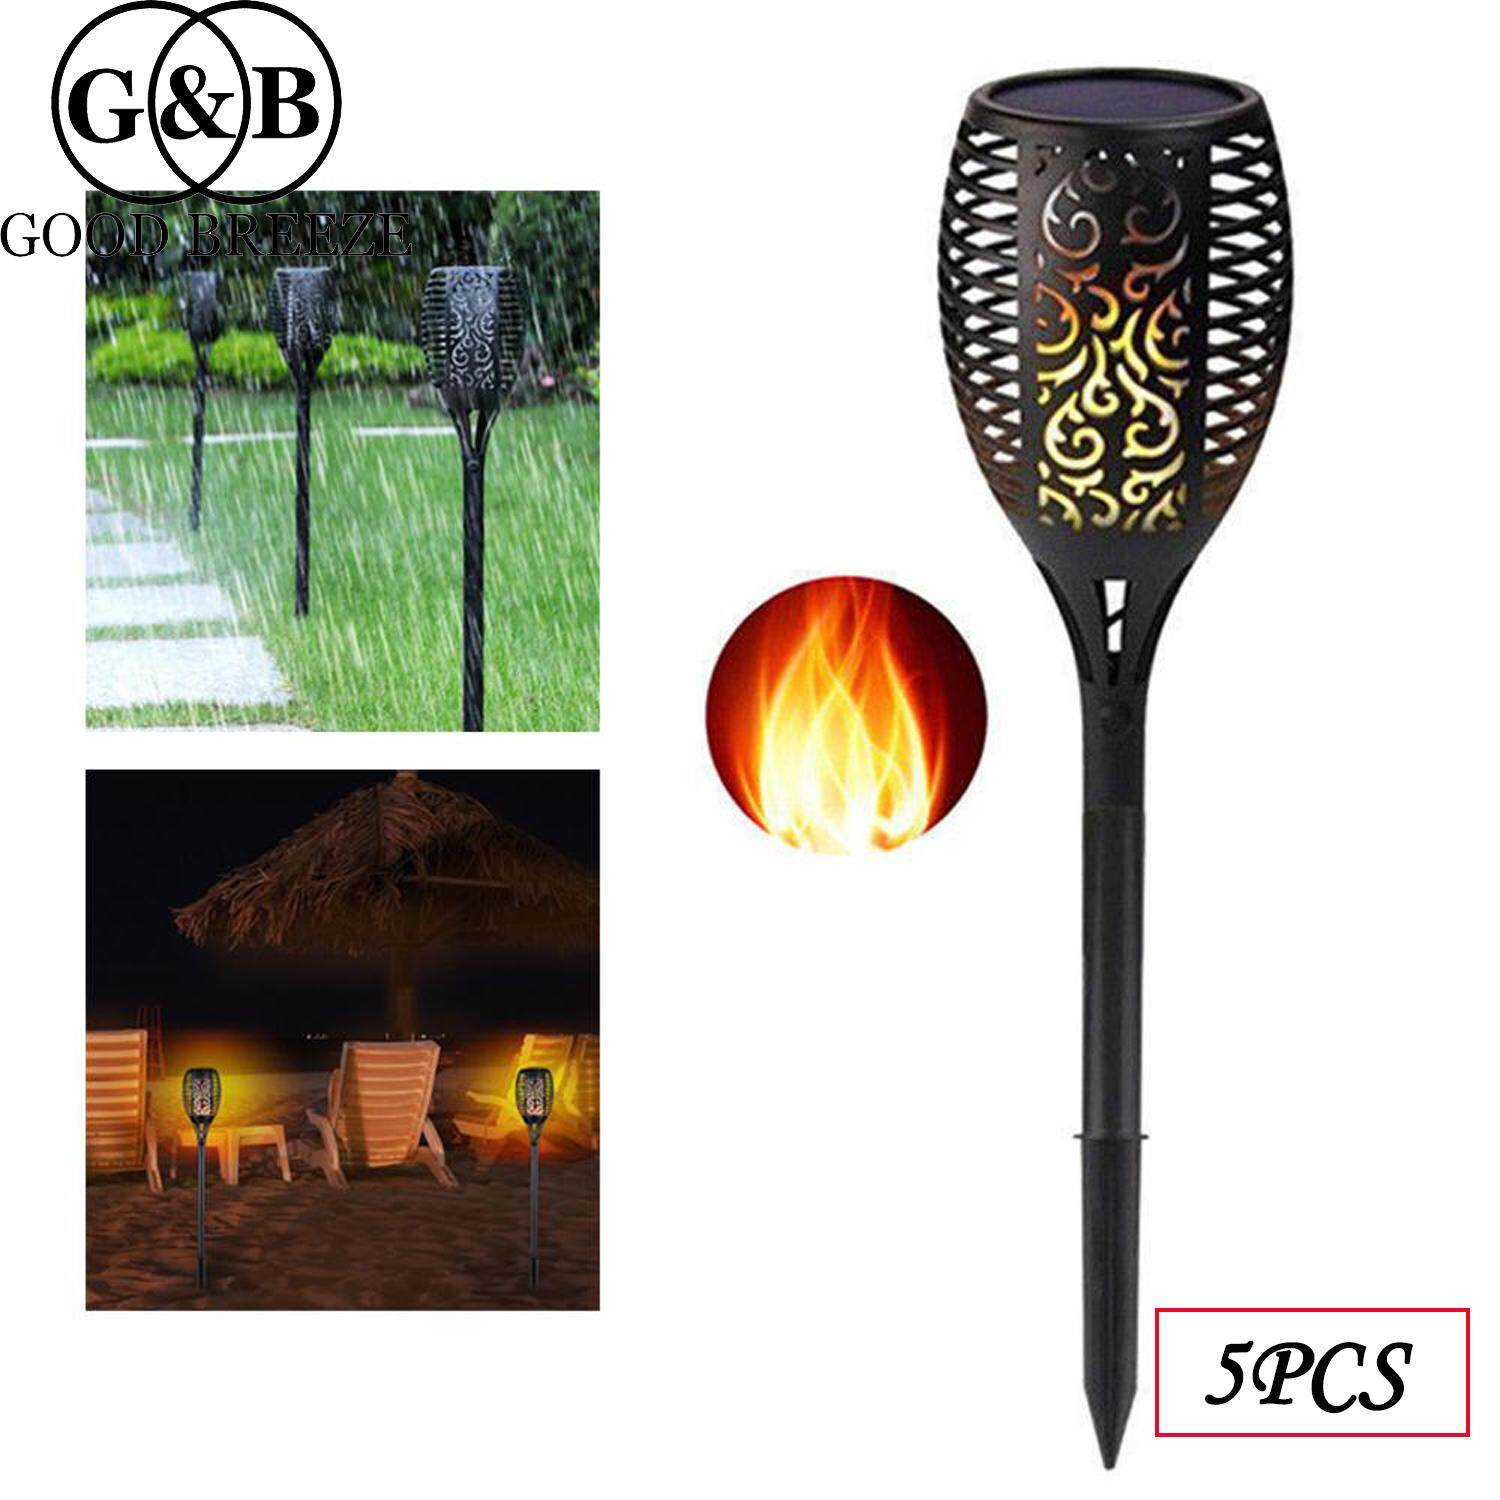 G&B Good Breeze Solar Torch Lights, Waterproof Flickering Flame Light Security Path Lights Dusk to Dawn Auto On/Off for Garden Courtyard Lawn Decorative Landscape Lights